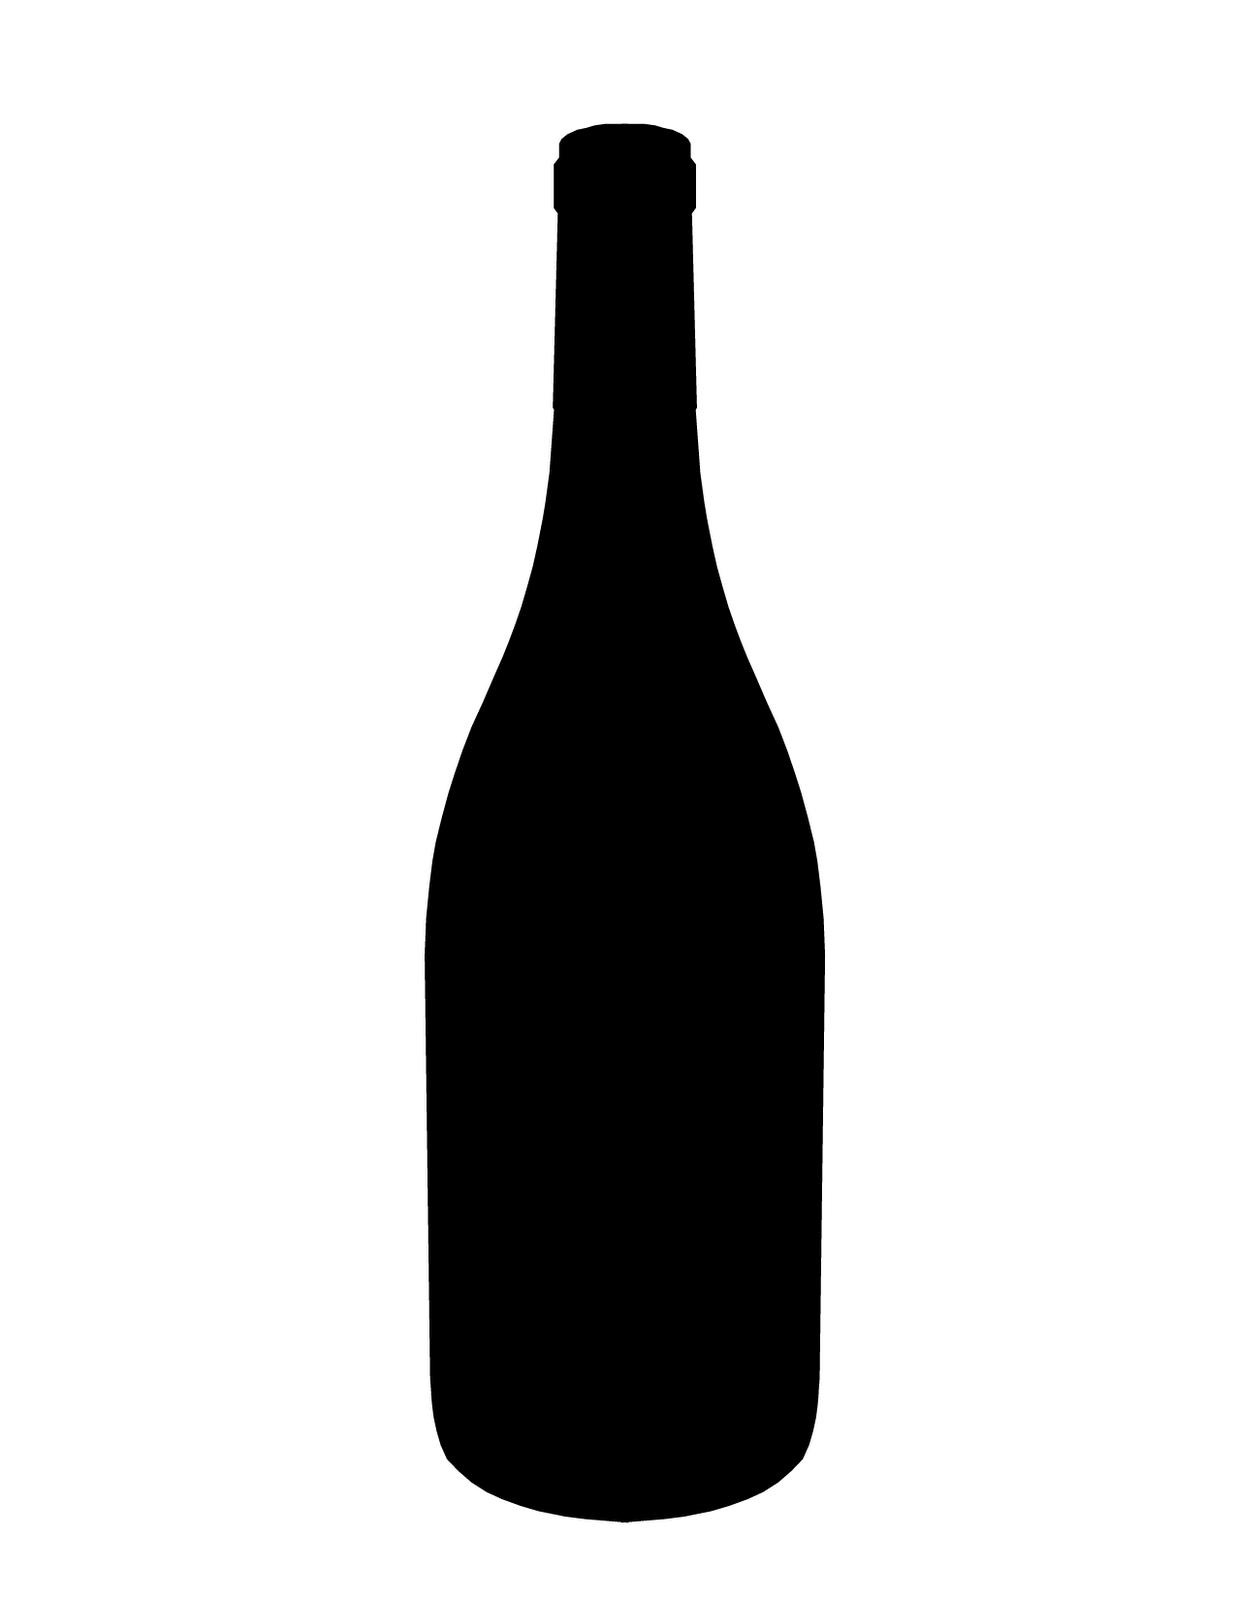 Bottle clipart silhouette – Art Wine Silhouette Silhouette